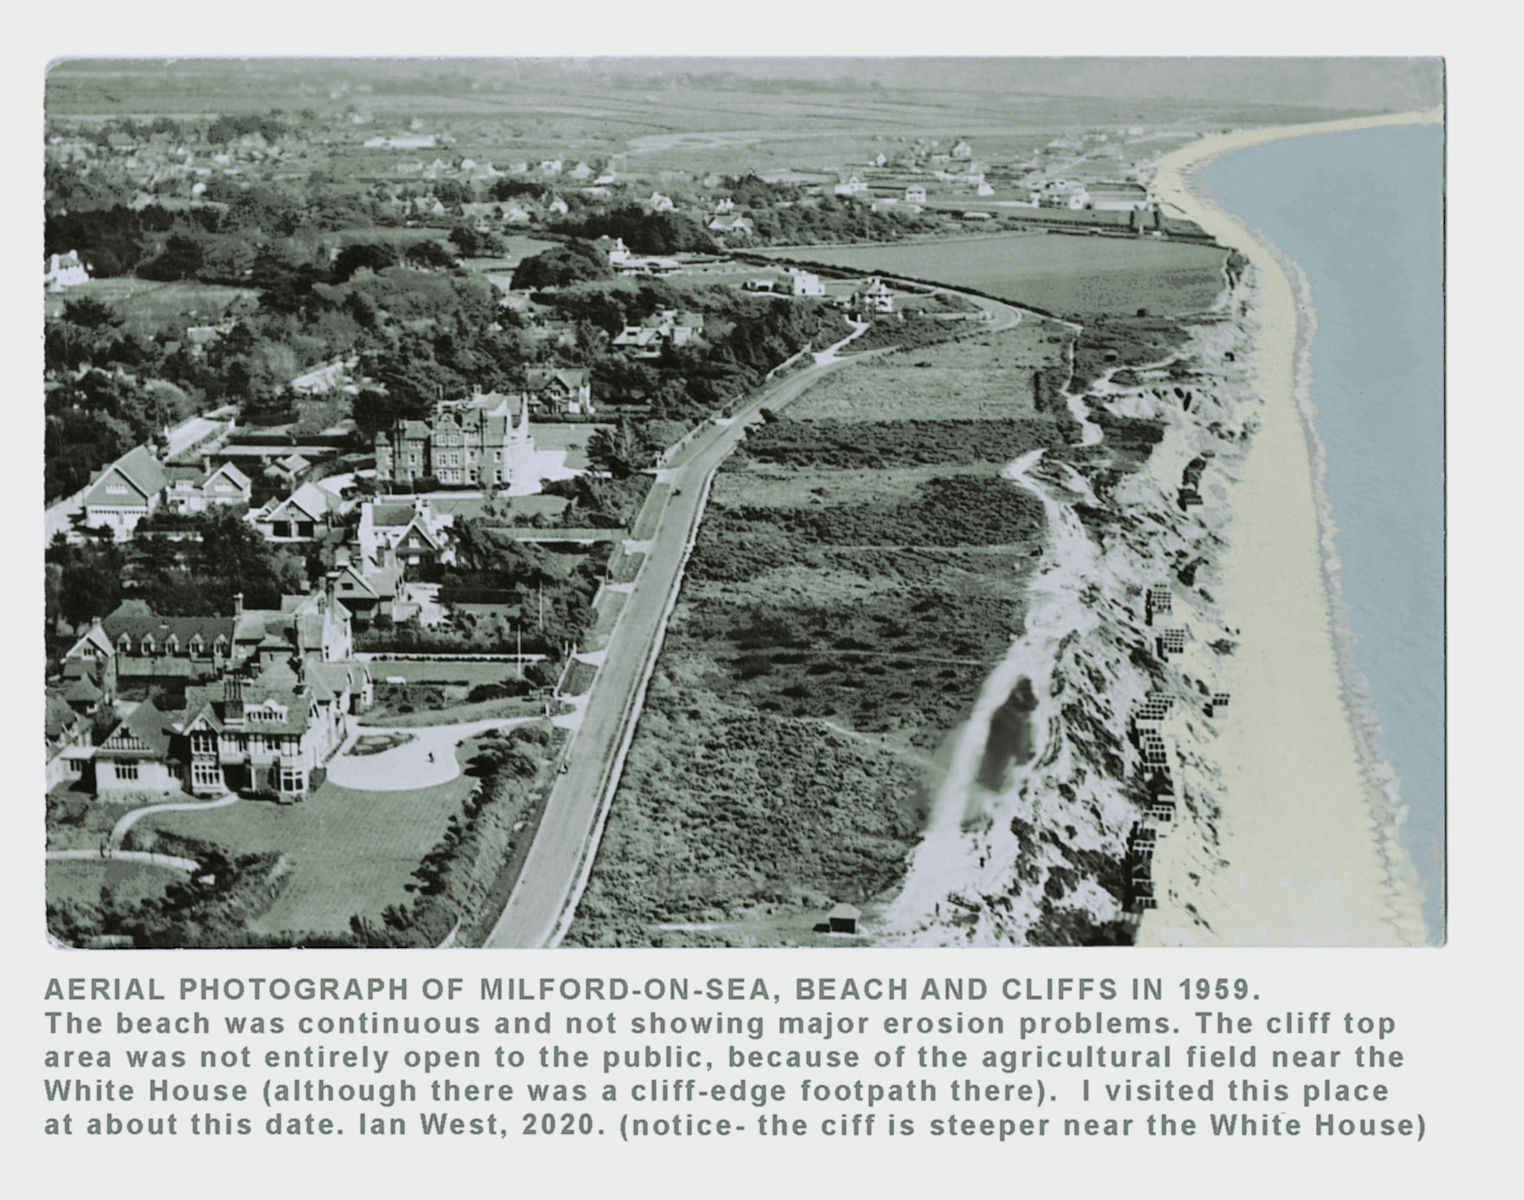 A 1959 aerial photograph of the cliffs at  Milford-on-Sea in 1959, copyright of Ian West